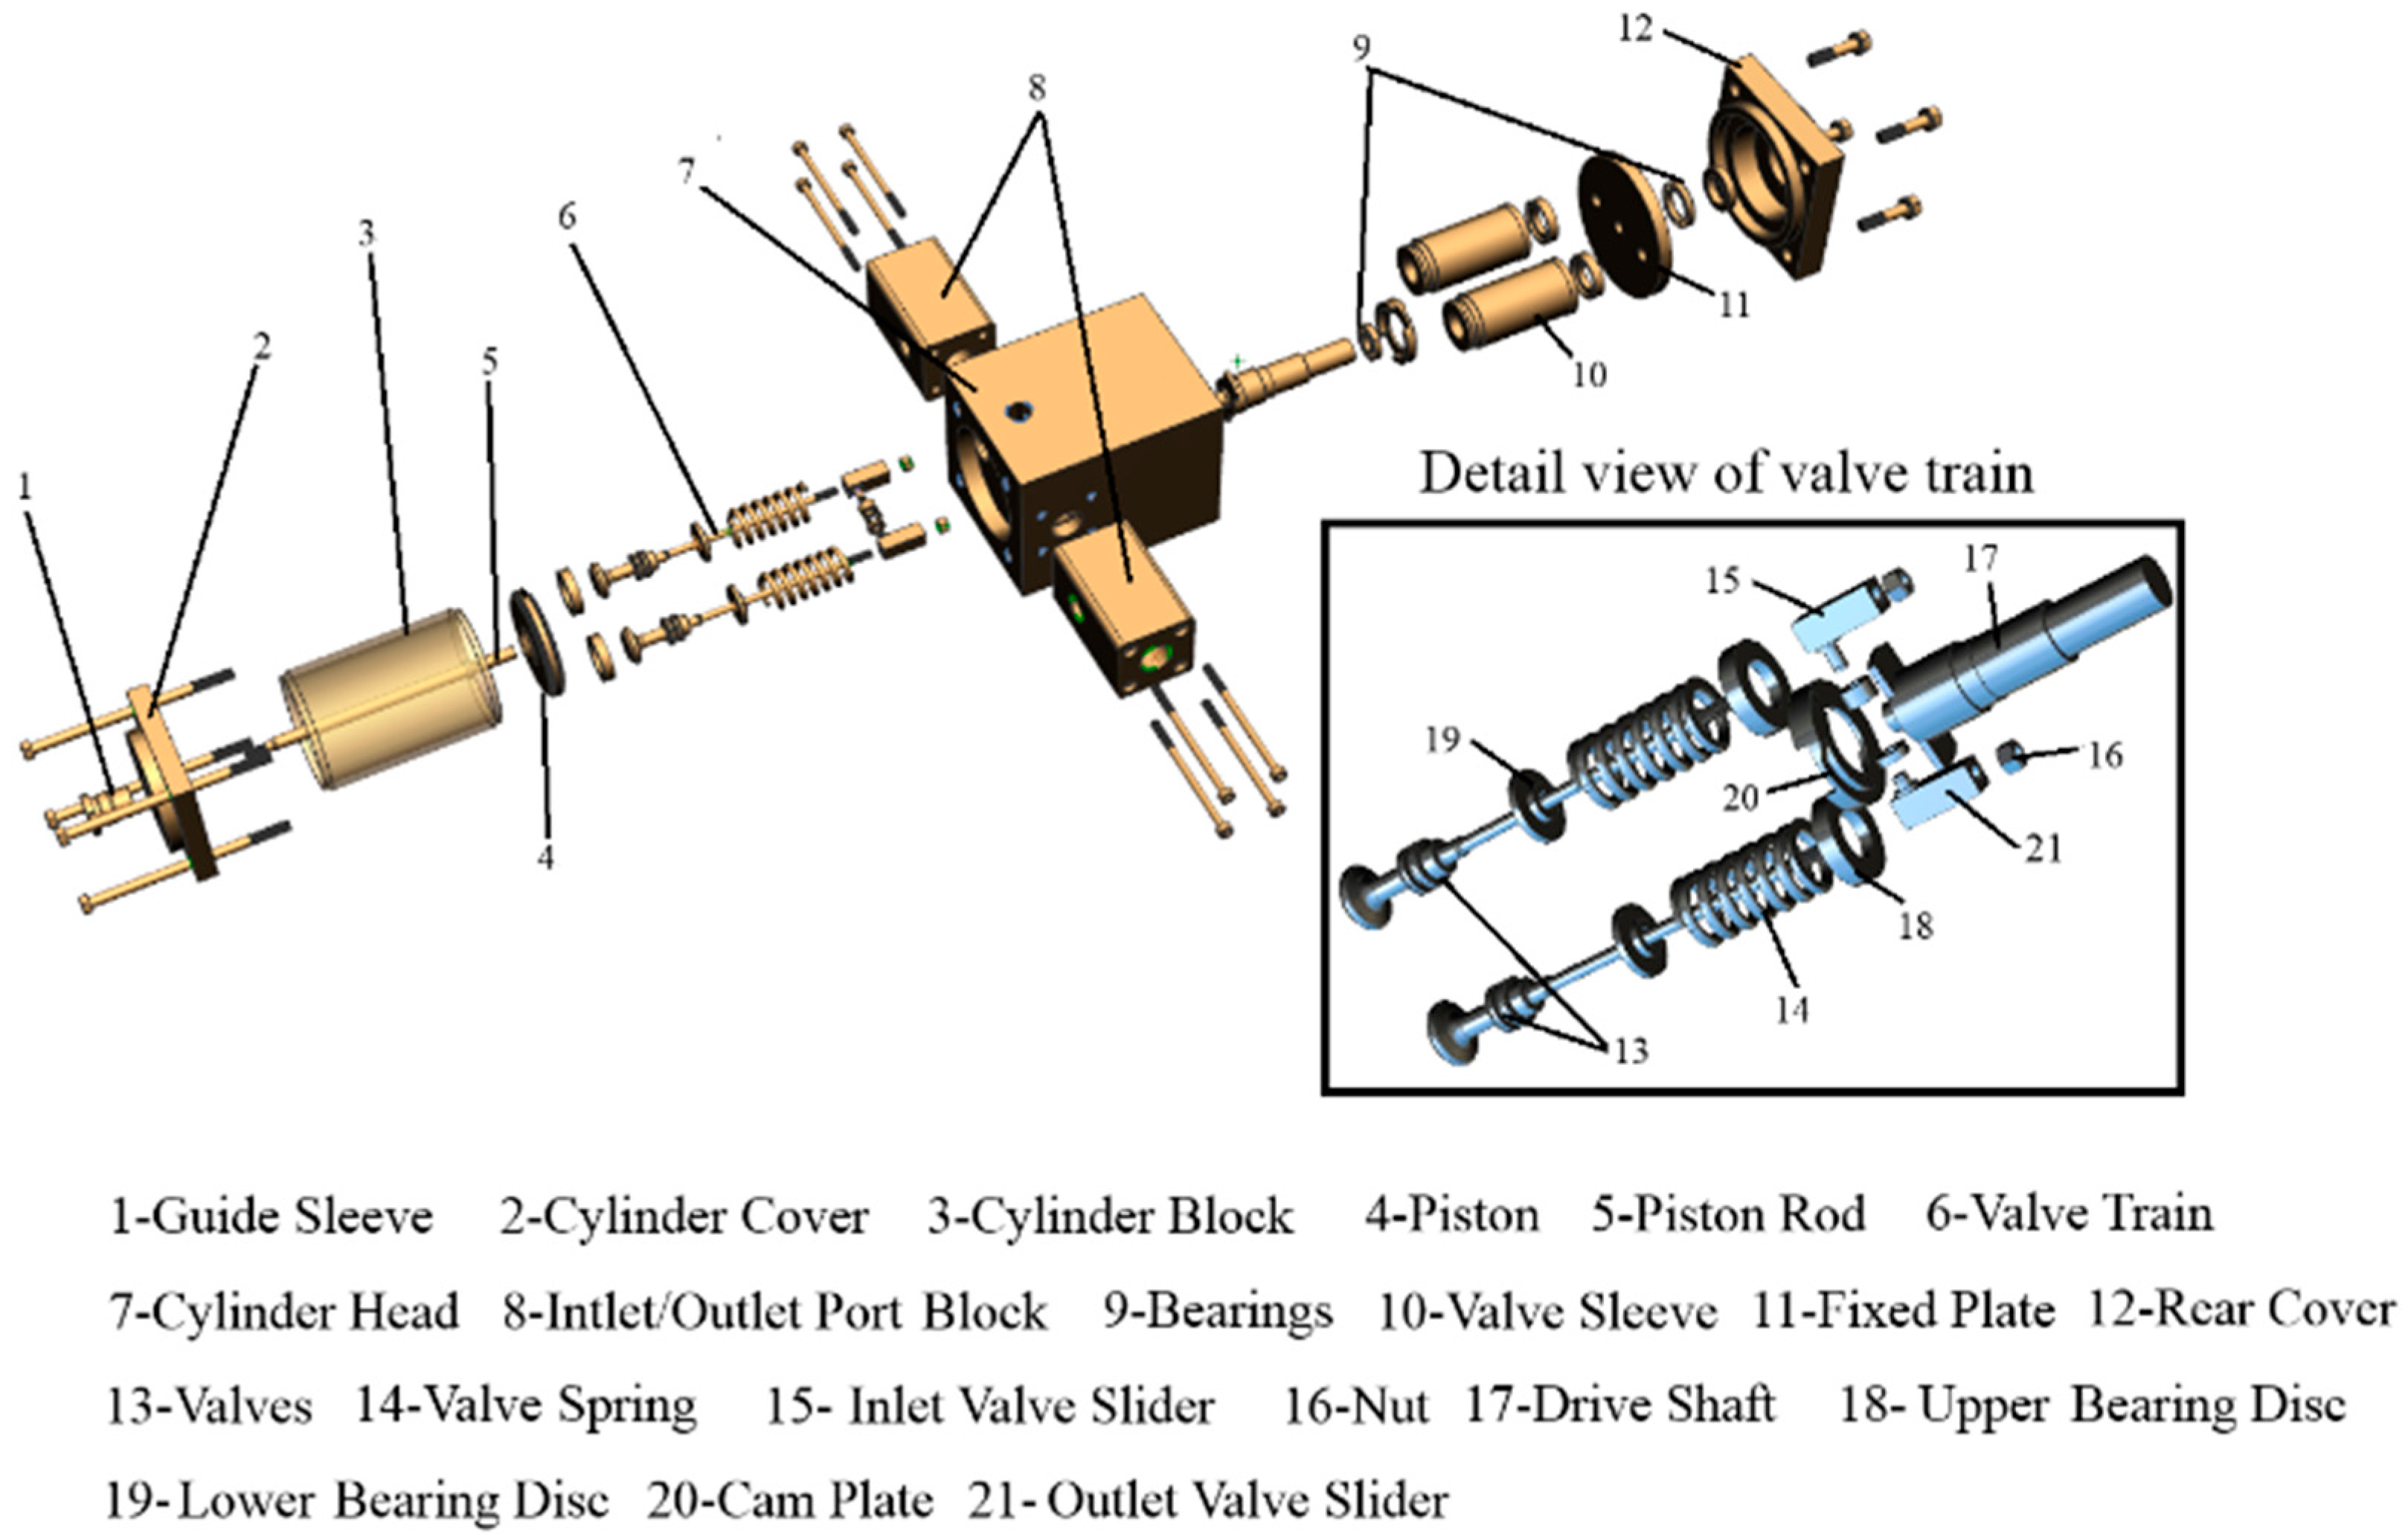 Energies Free Full Text Preliminary Development Of A Piston Small Engine Cylinder Head Diagram 09 00300 G003 1024